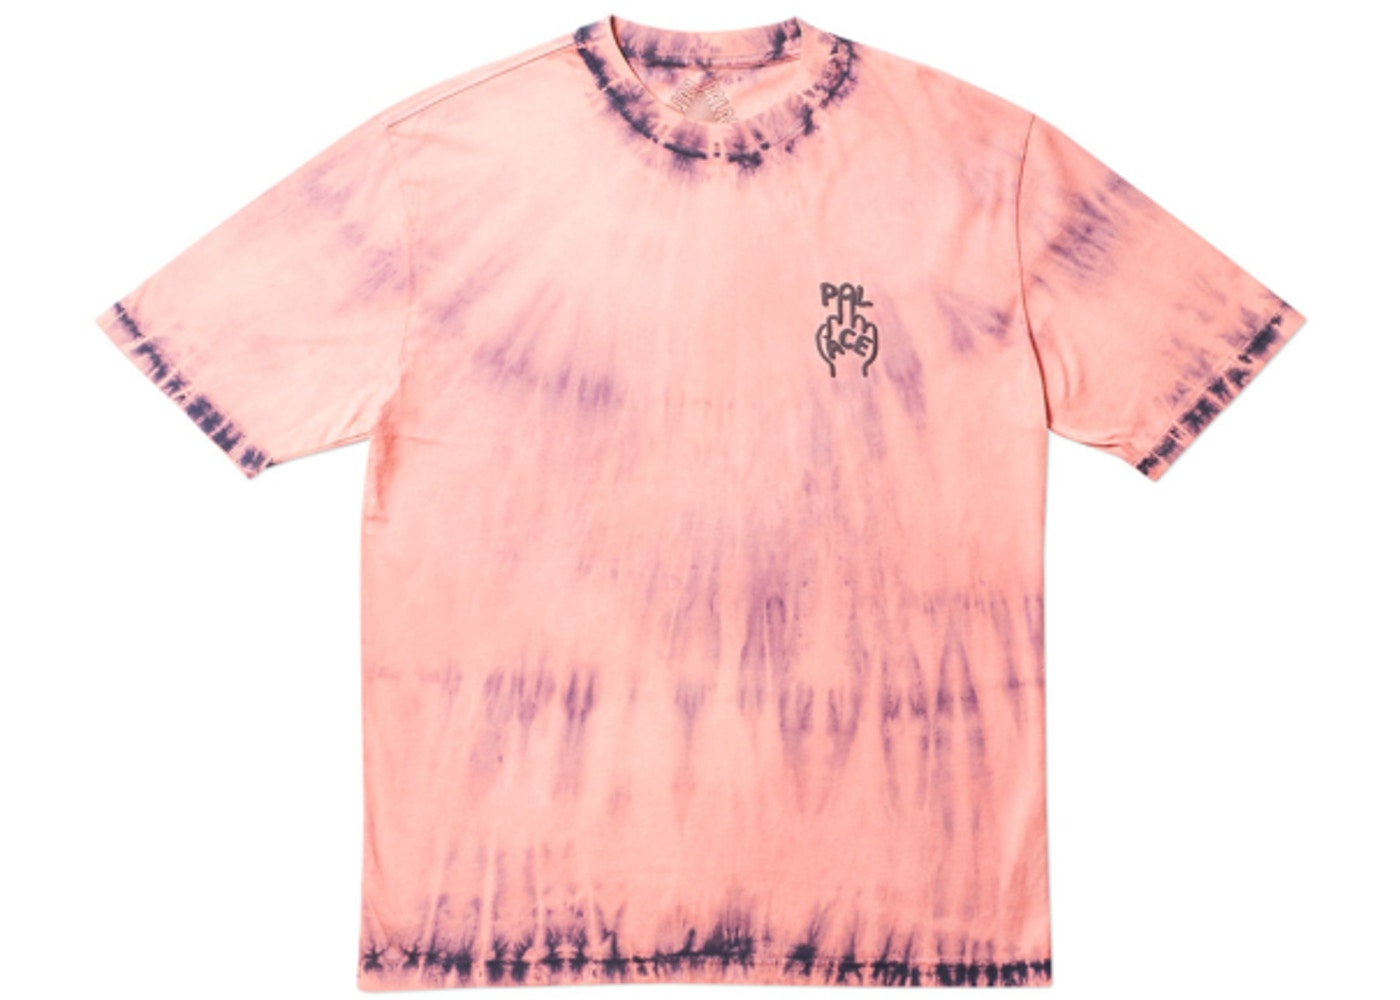 2eac6025 Palace Finger Up T-Shirt Navy Tie Dye - FW18